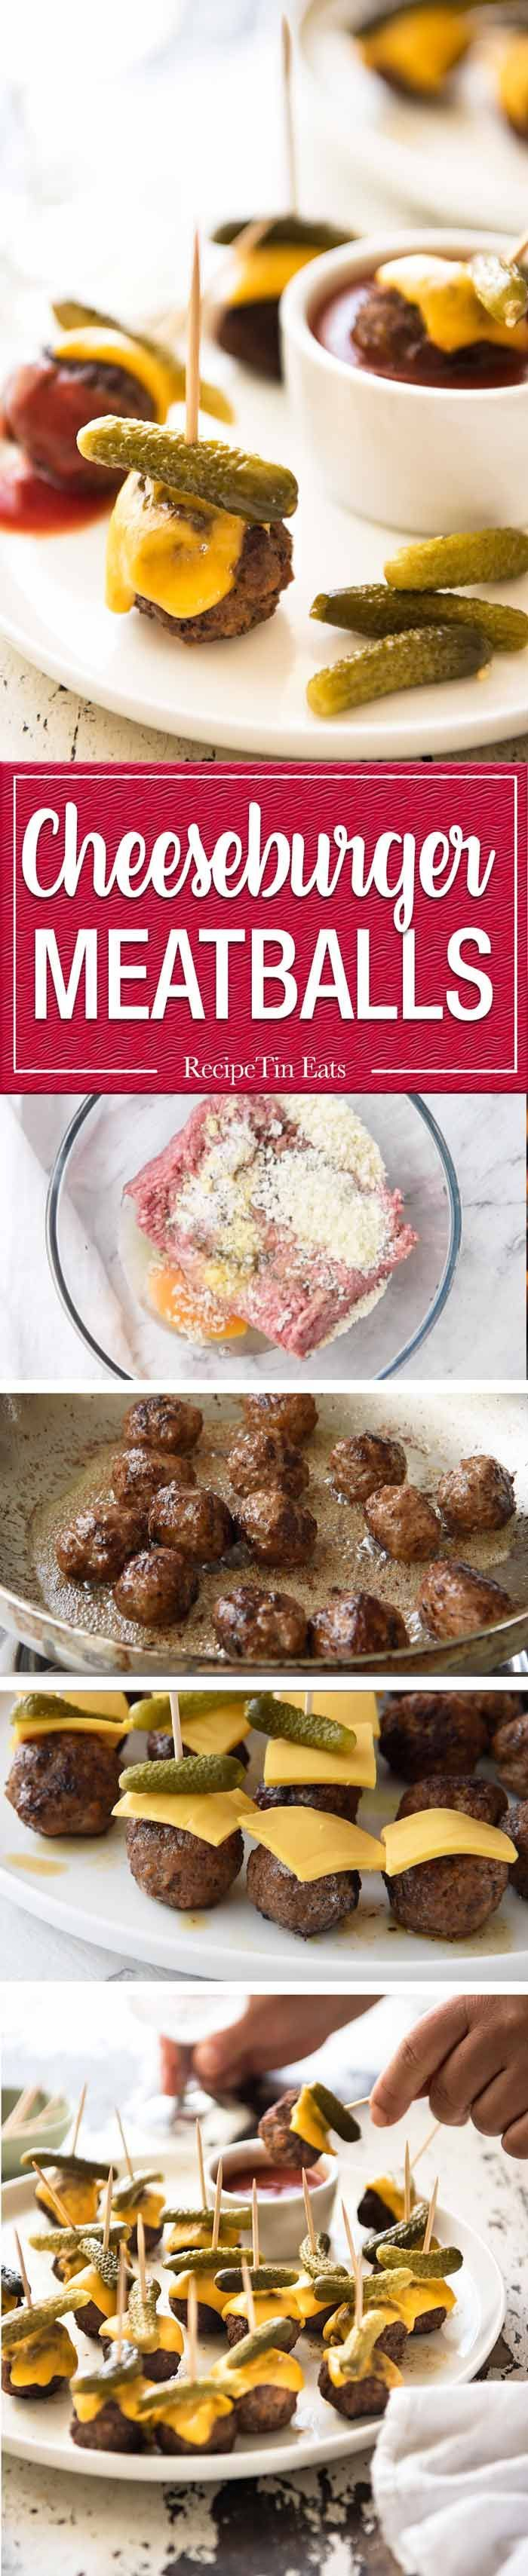 Photo of Cheeseburger Party Meatballs